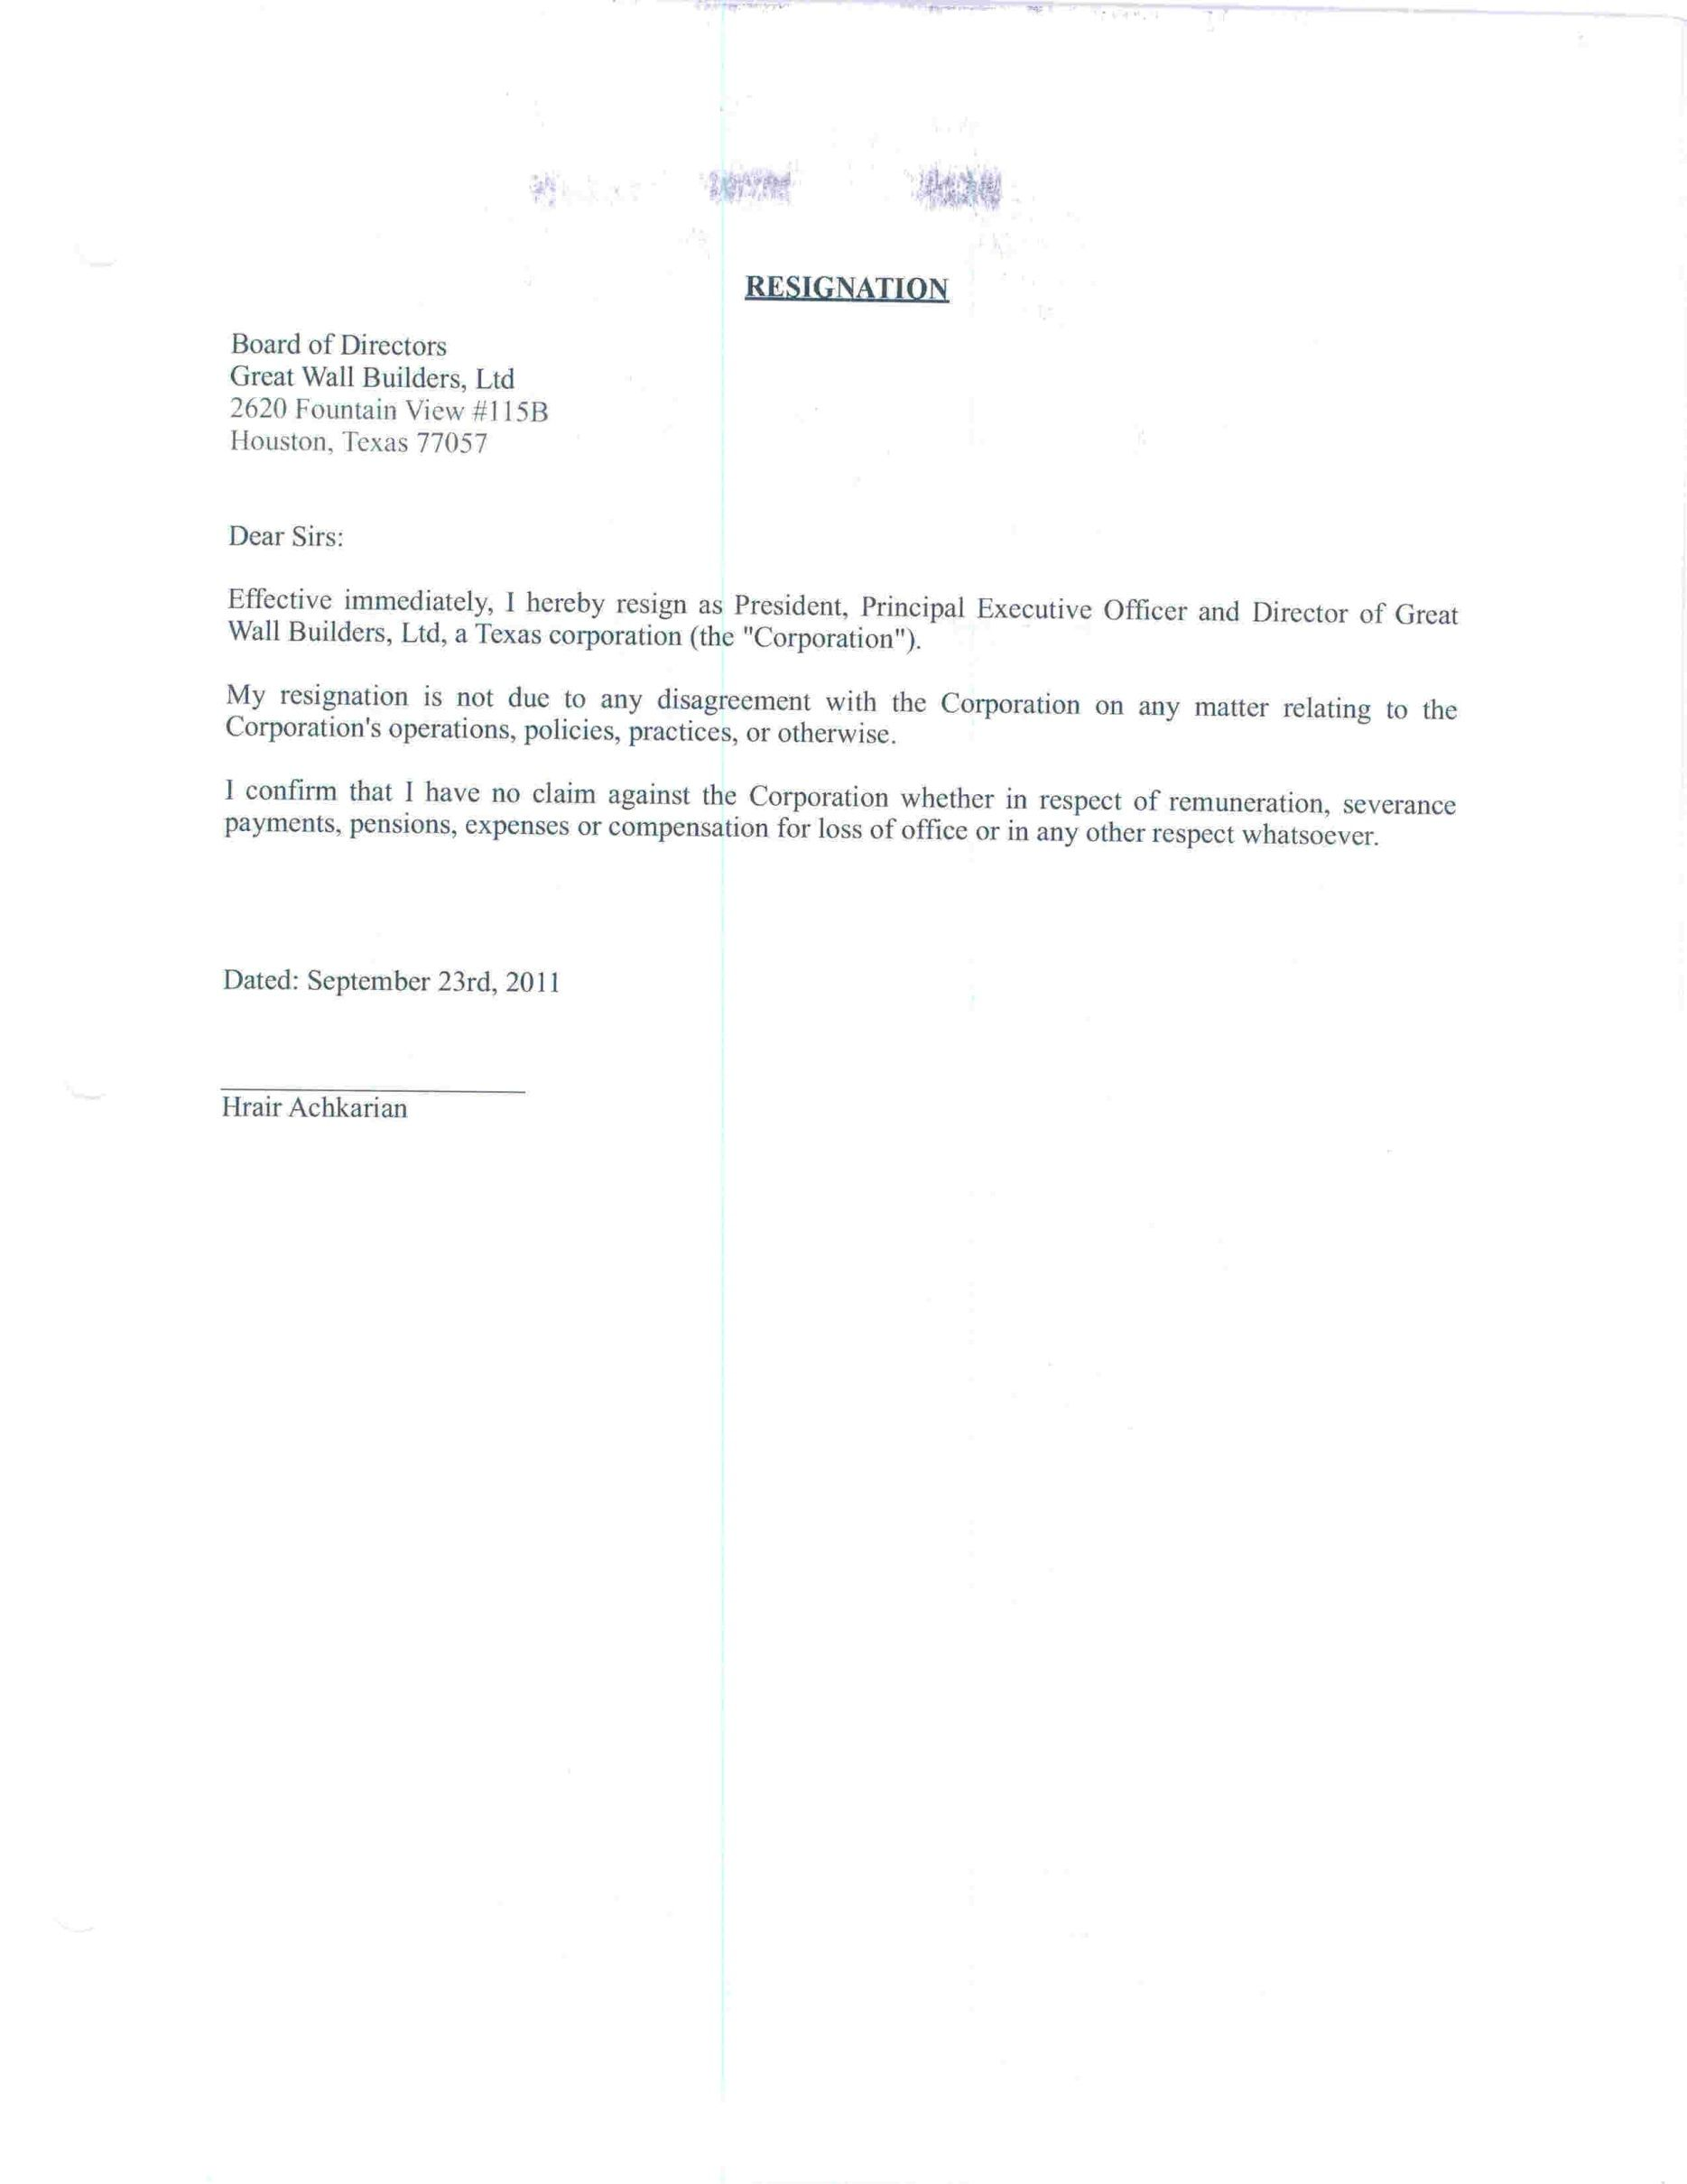 15 Photos of Great Resignation Letters | letter | Pinterest ...